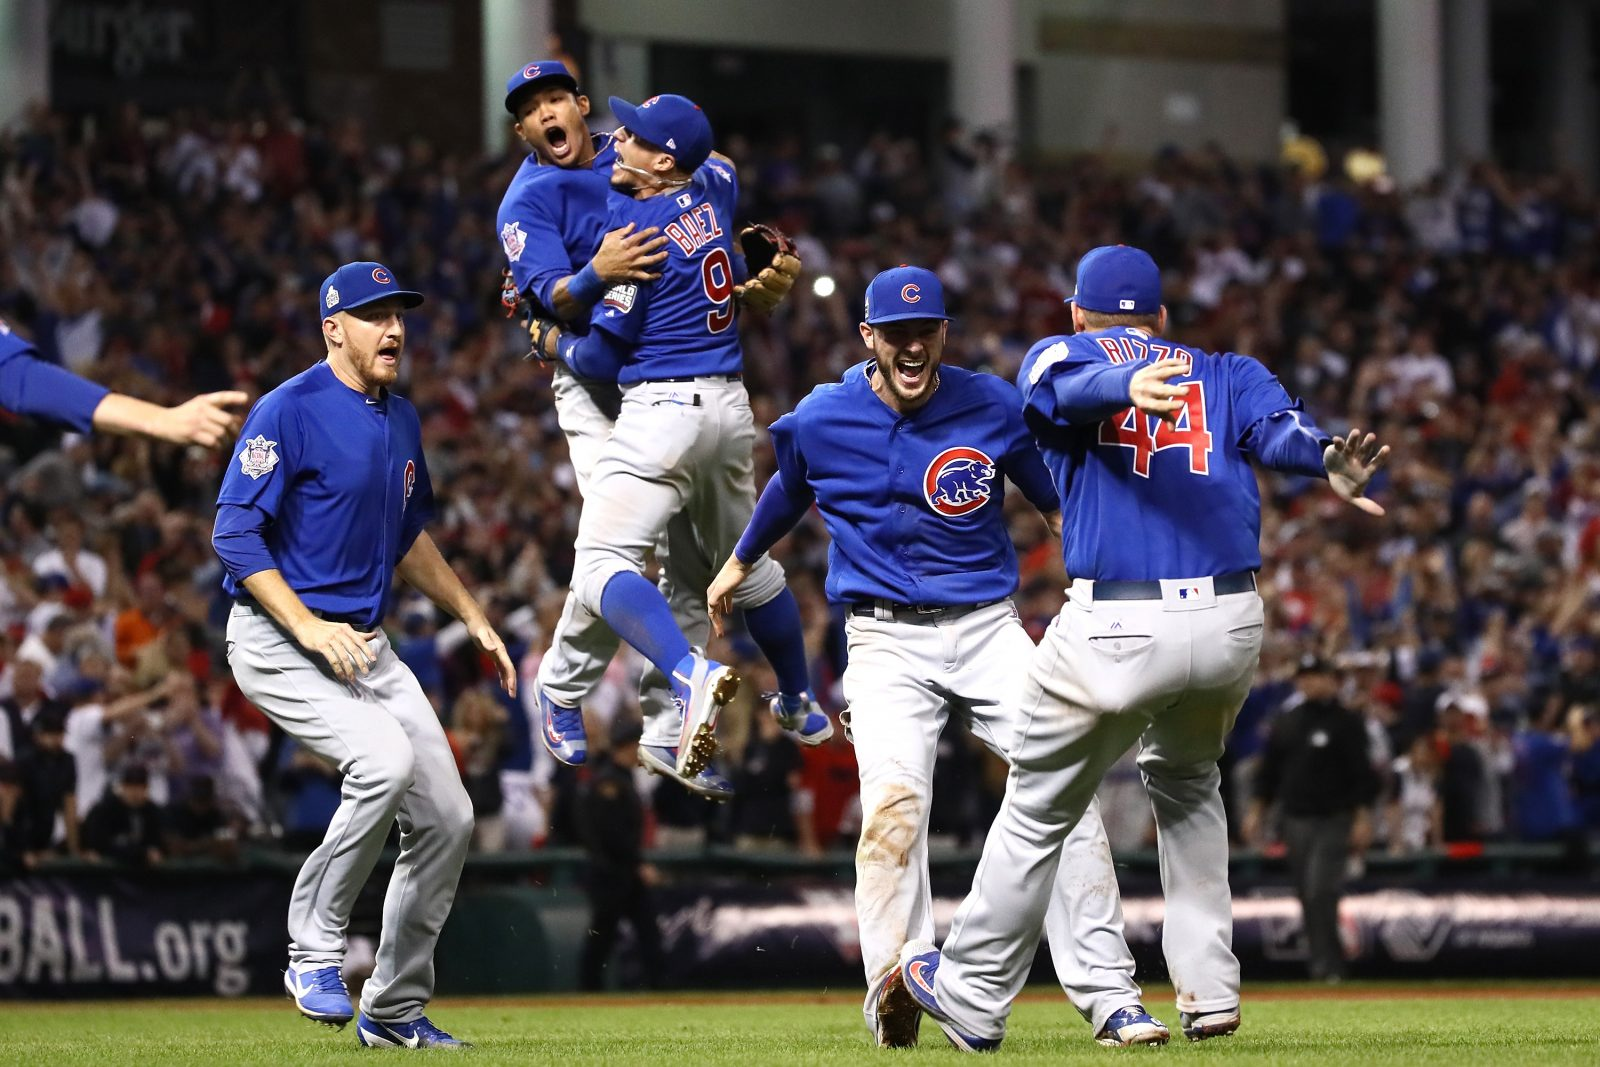 The Chicago Cubs celebrate after winning 8-7 in Game Seven of the 2016 World Series at Progressive Field. (Photo by Ezra Shaw/Getty Images)